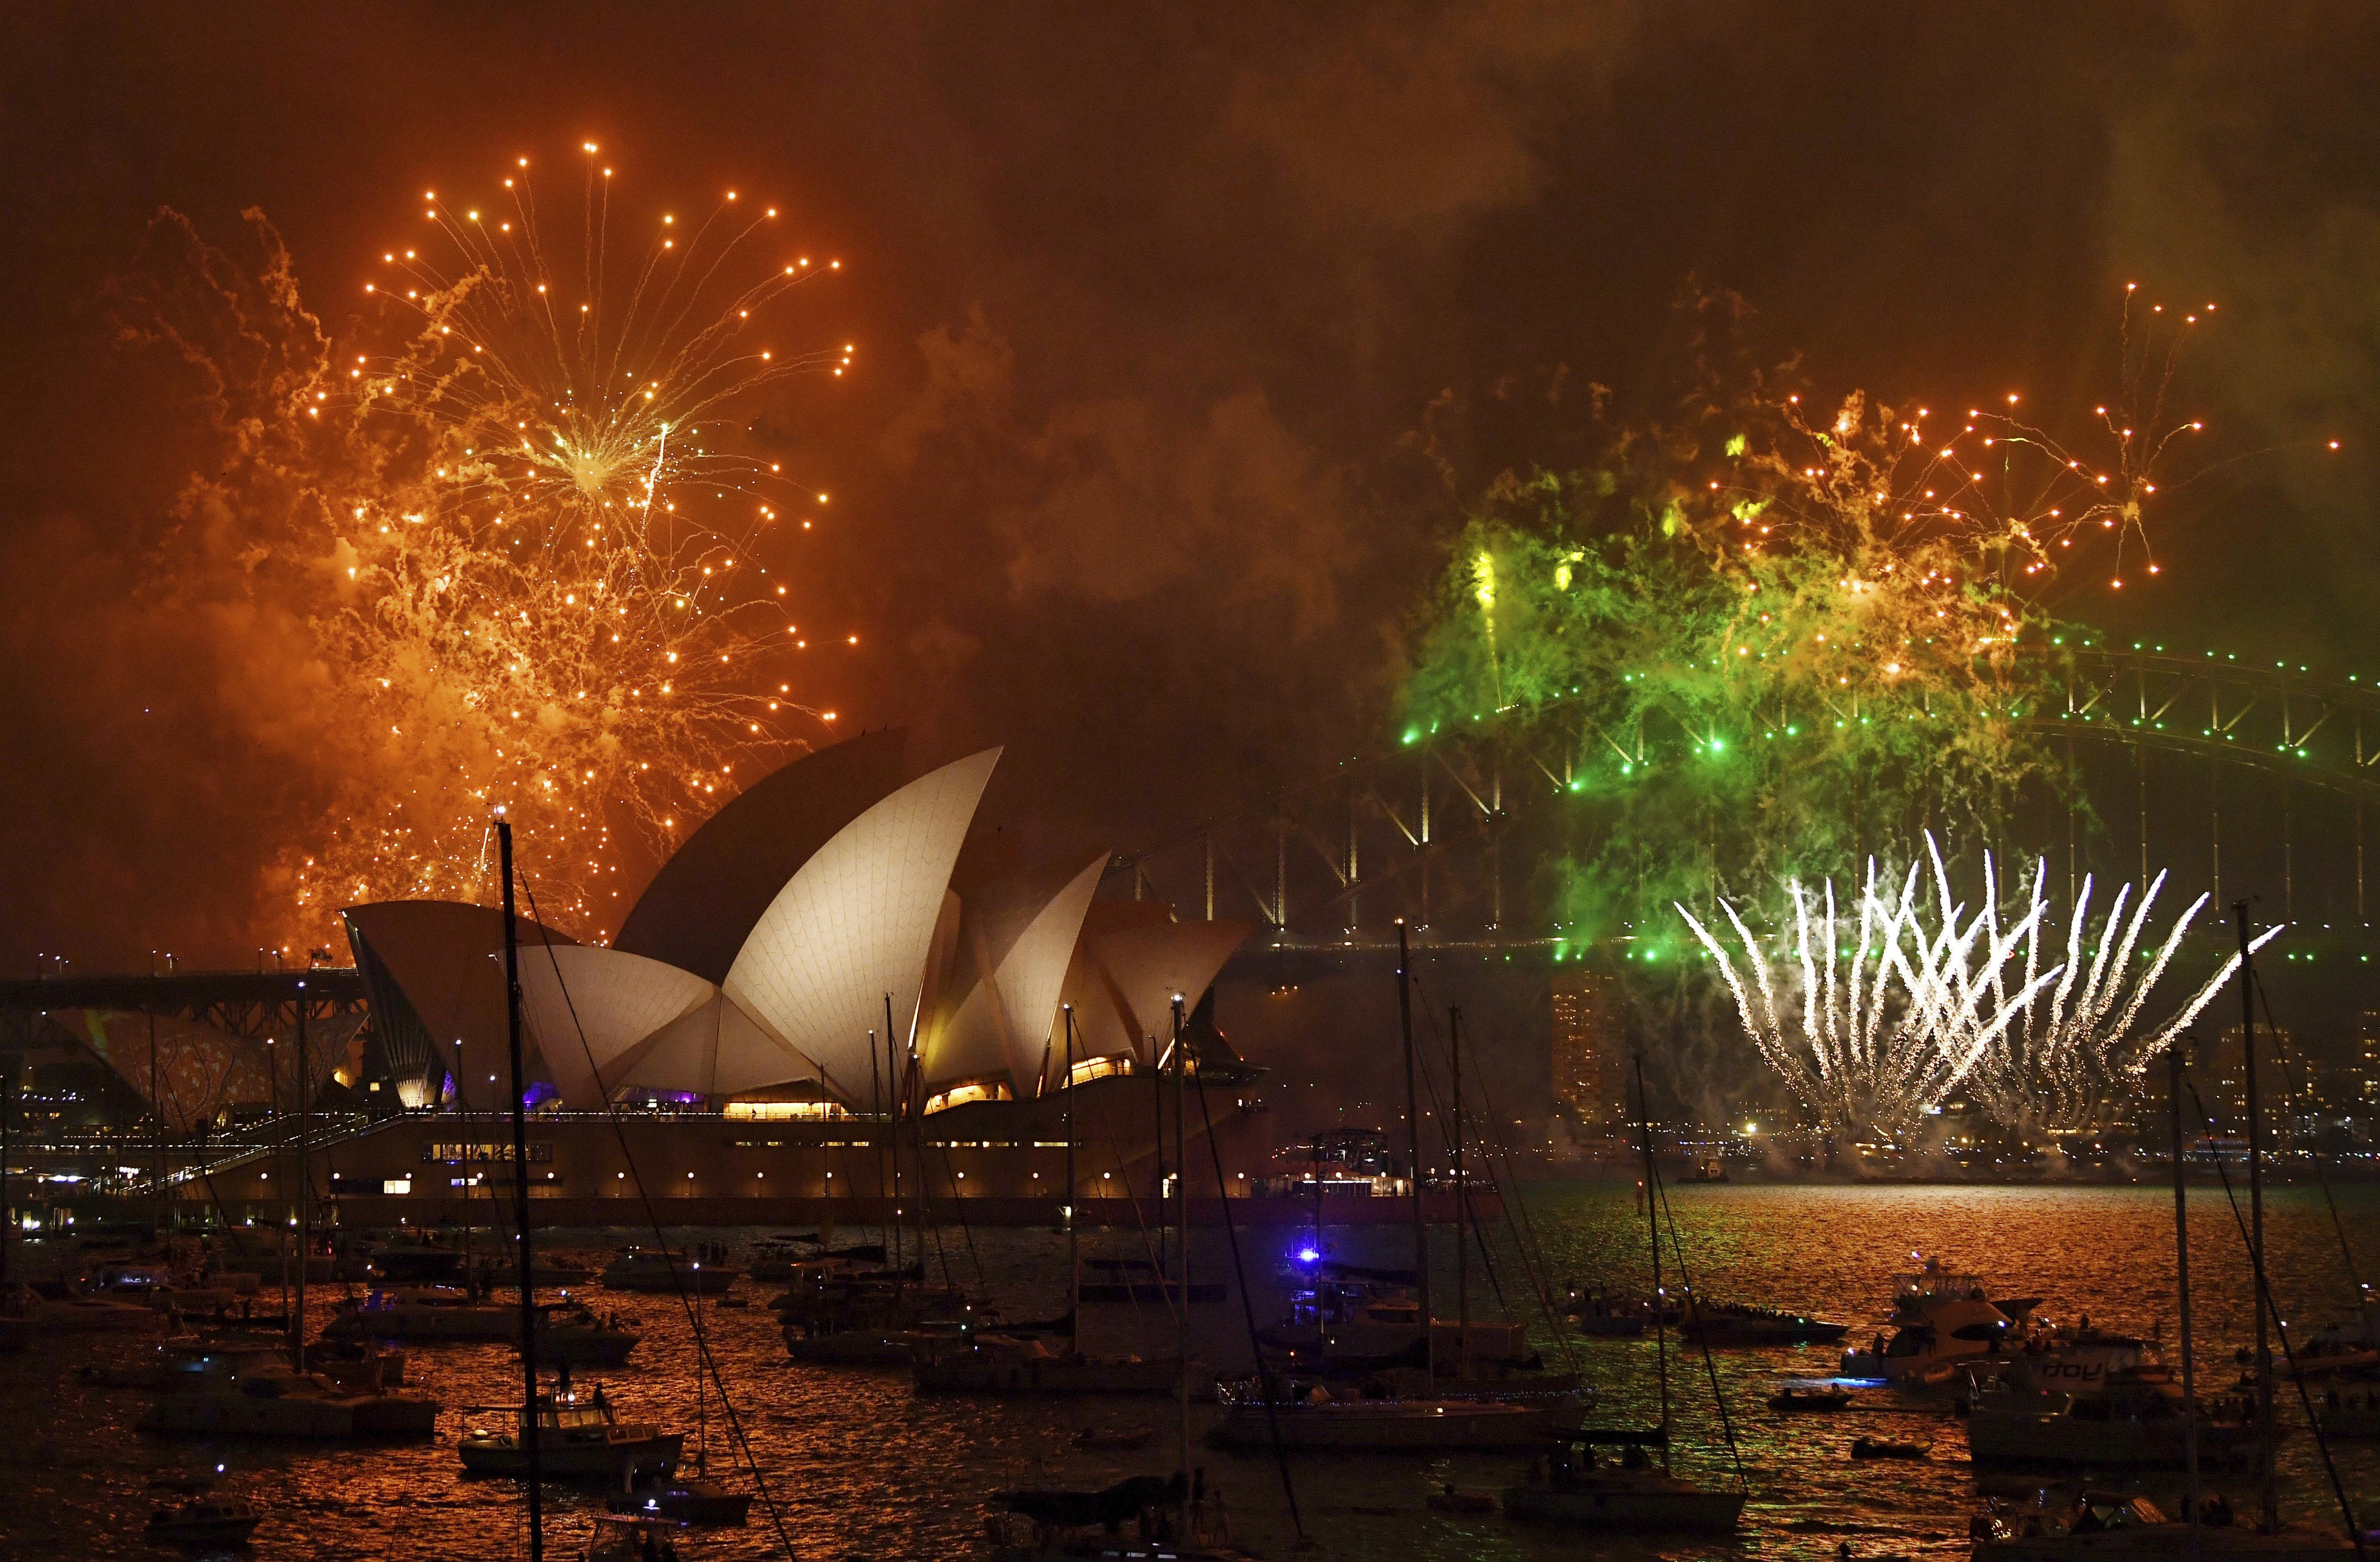 Fireworks, prayers as revelers around the world welcome 2018 | The ...